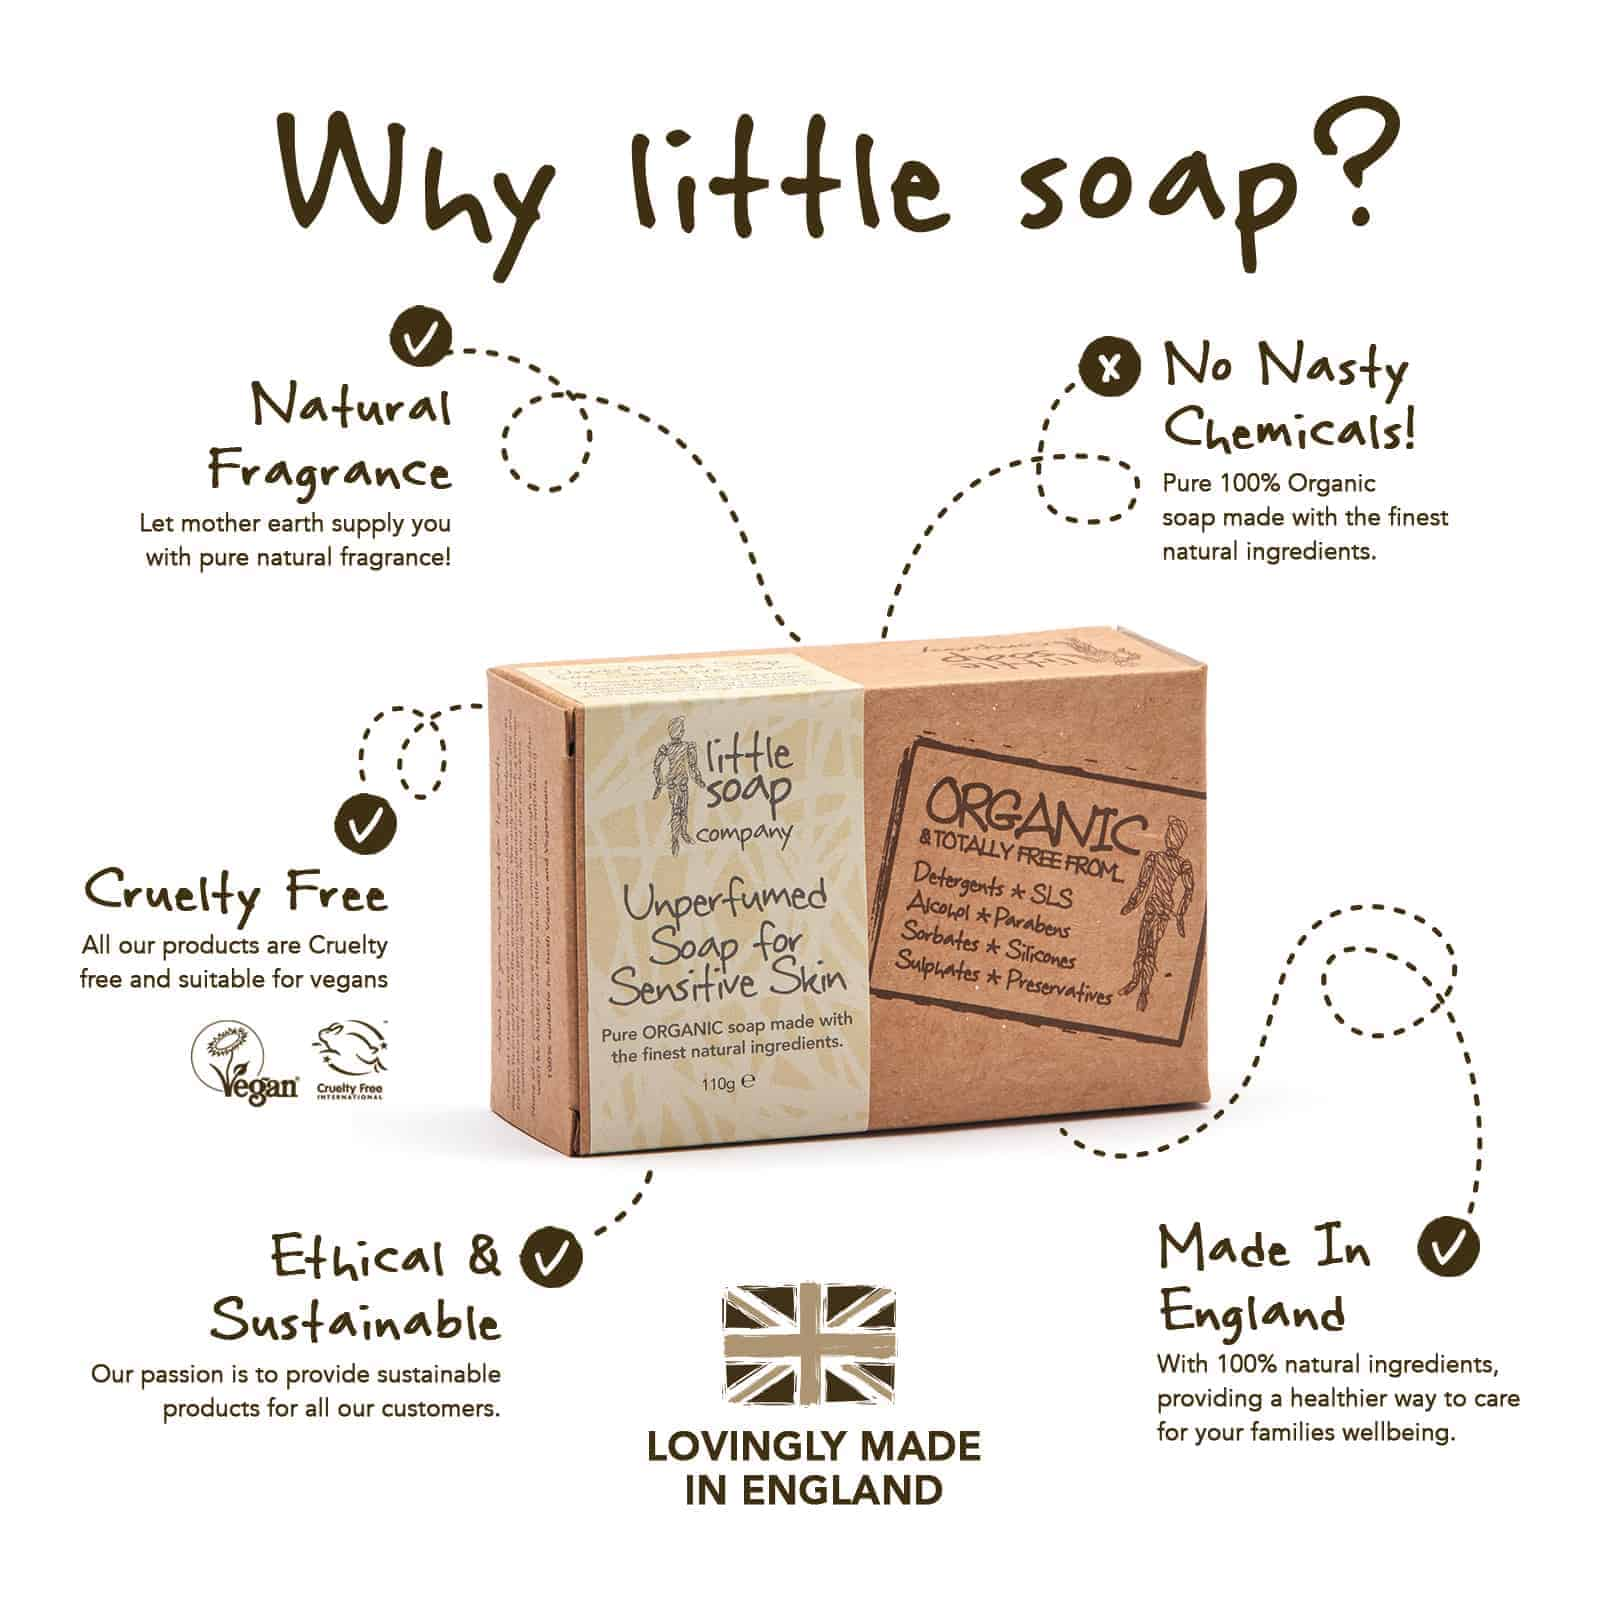 Manage Sensitive Skin from Within_LittleSoapCompany.co.uk